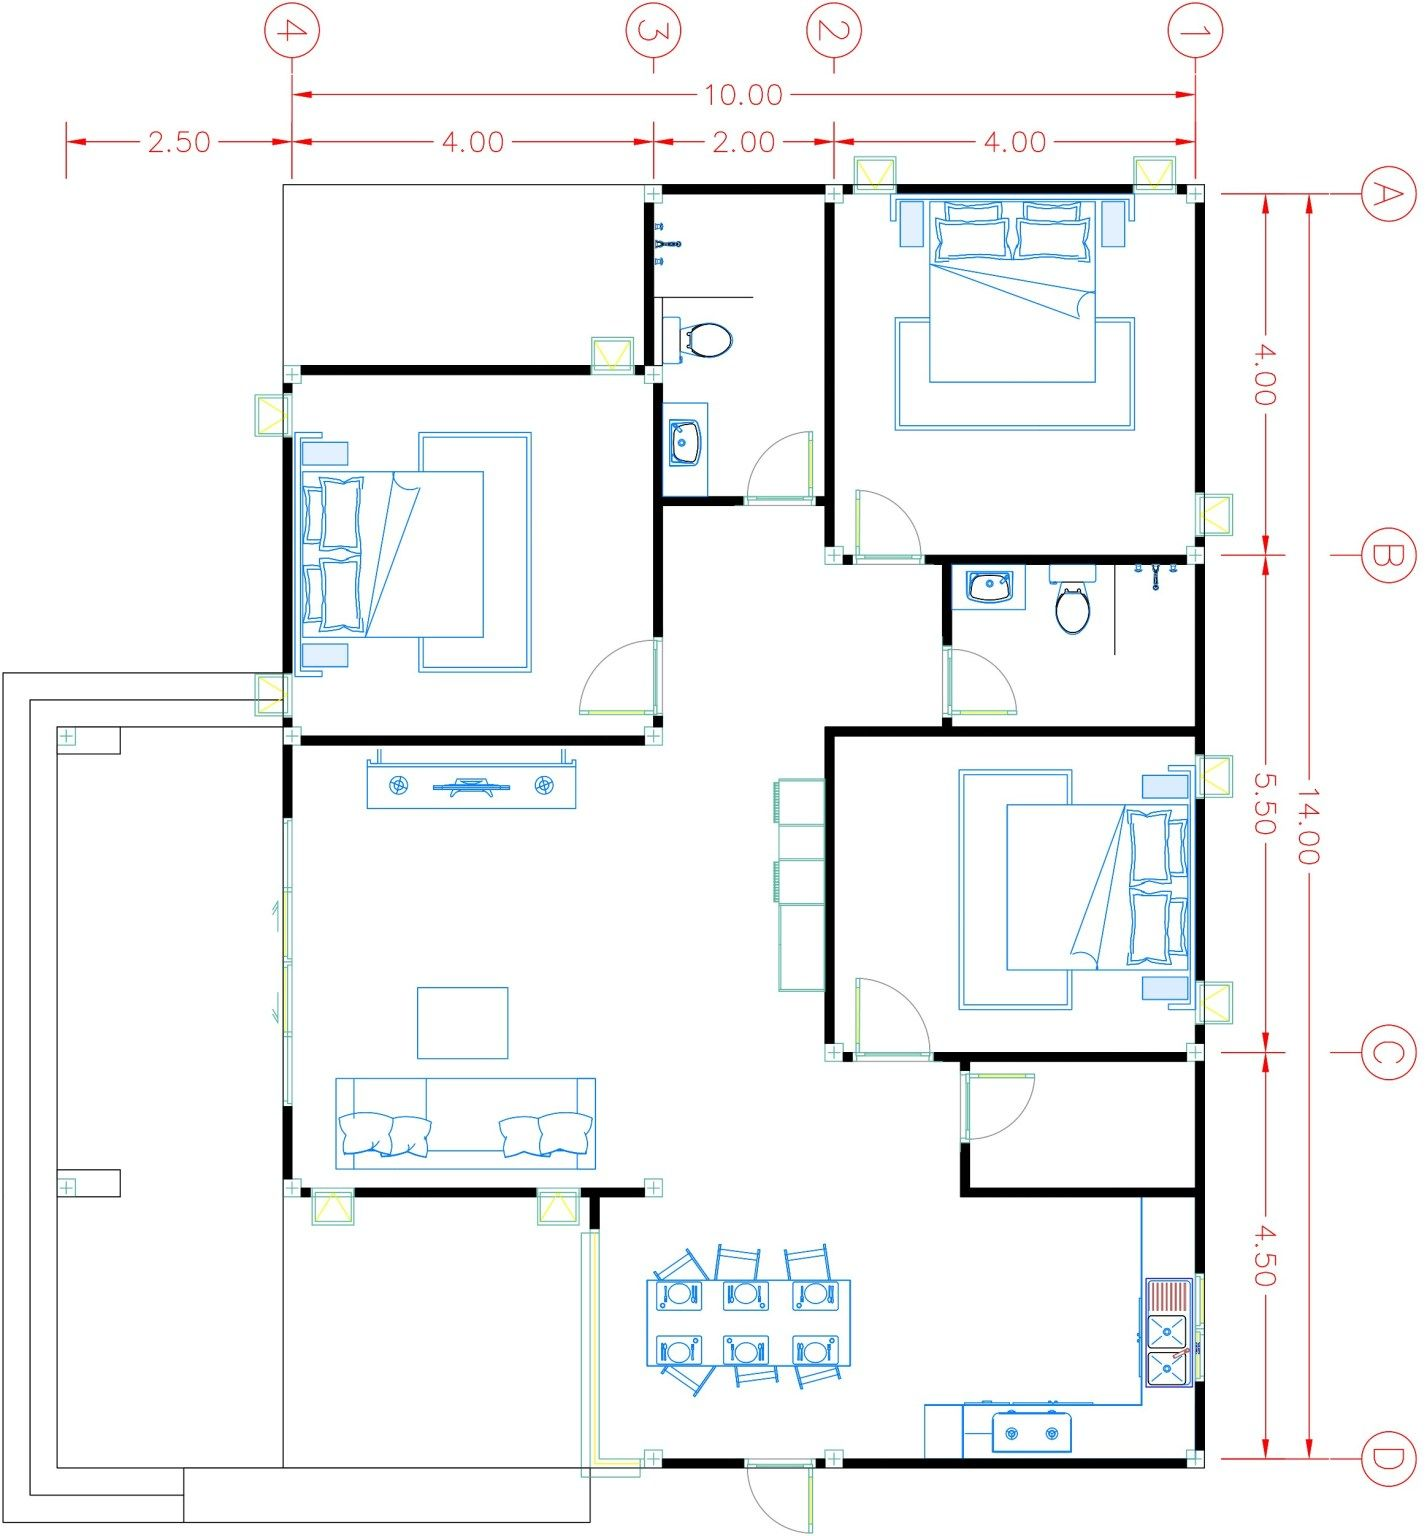 House Plans 14x12 5 With 3 Bedrooms Hip Roof Pujoy Studio House Plans Hip Roof How To Plan